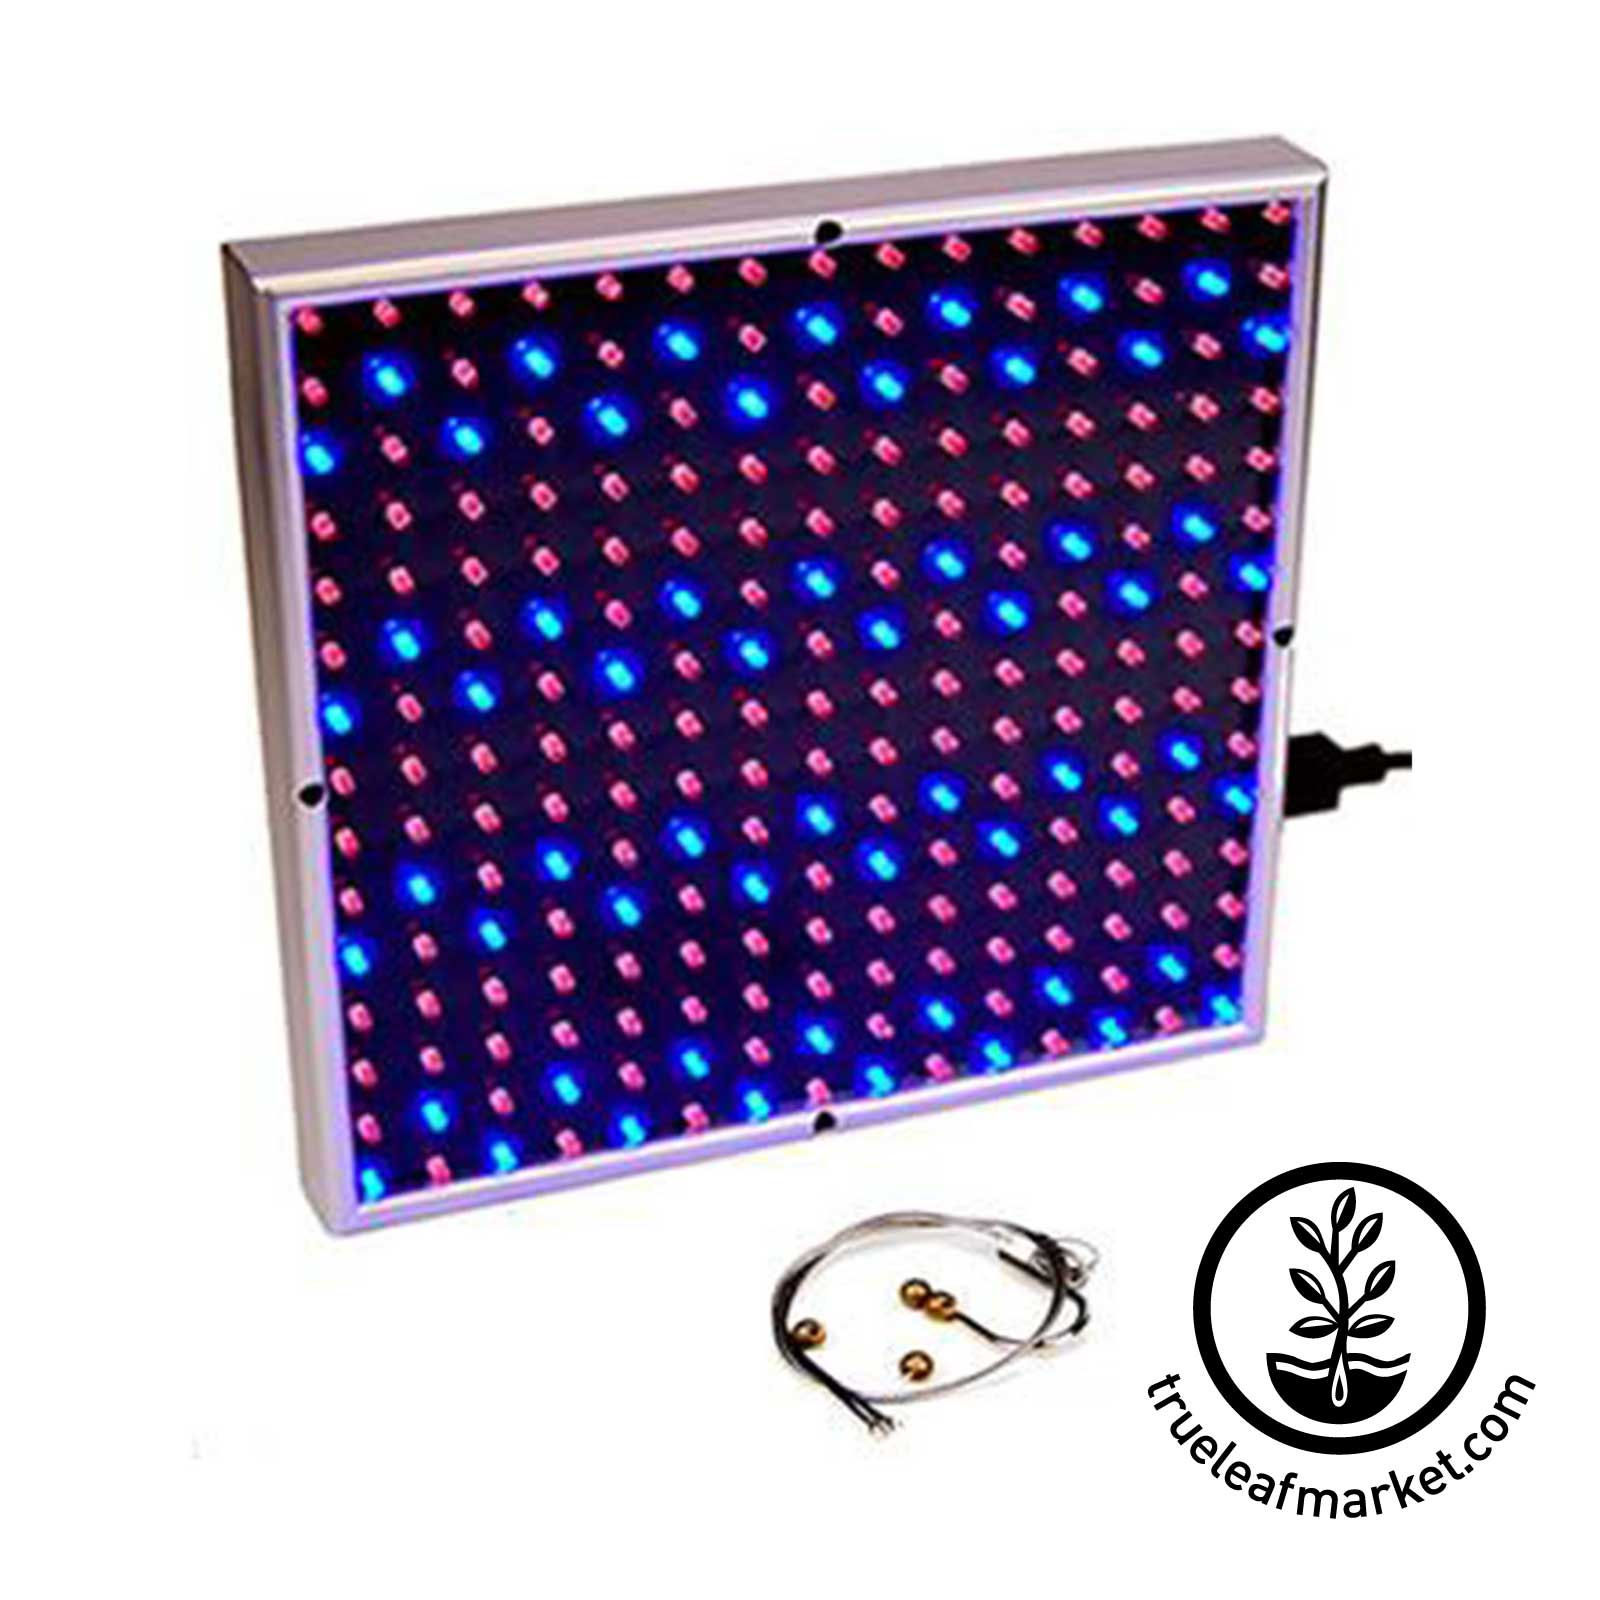 14 watt growing light